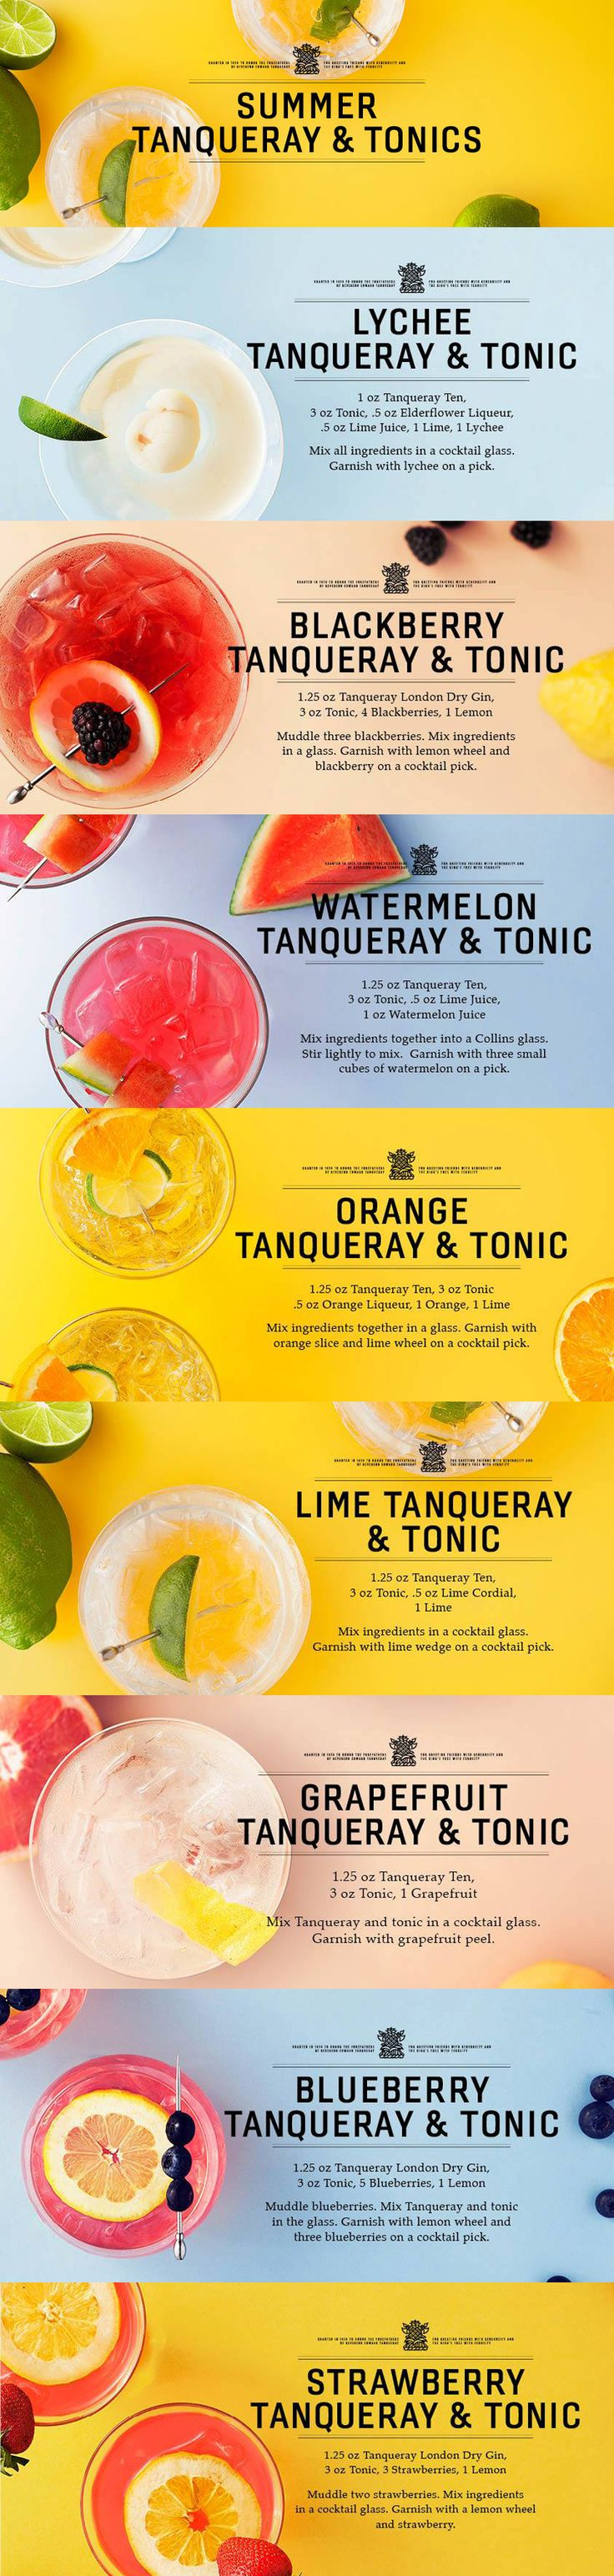 Gin and Tonics // tanqueray gin, tonic water, elderflower liqueur, lime, lychee, blackberries, lemon, lime juice, watermelon juice, cointreau, orange, lime cordial, grapefruit, blueberries, strawberries